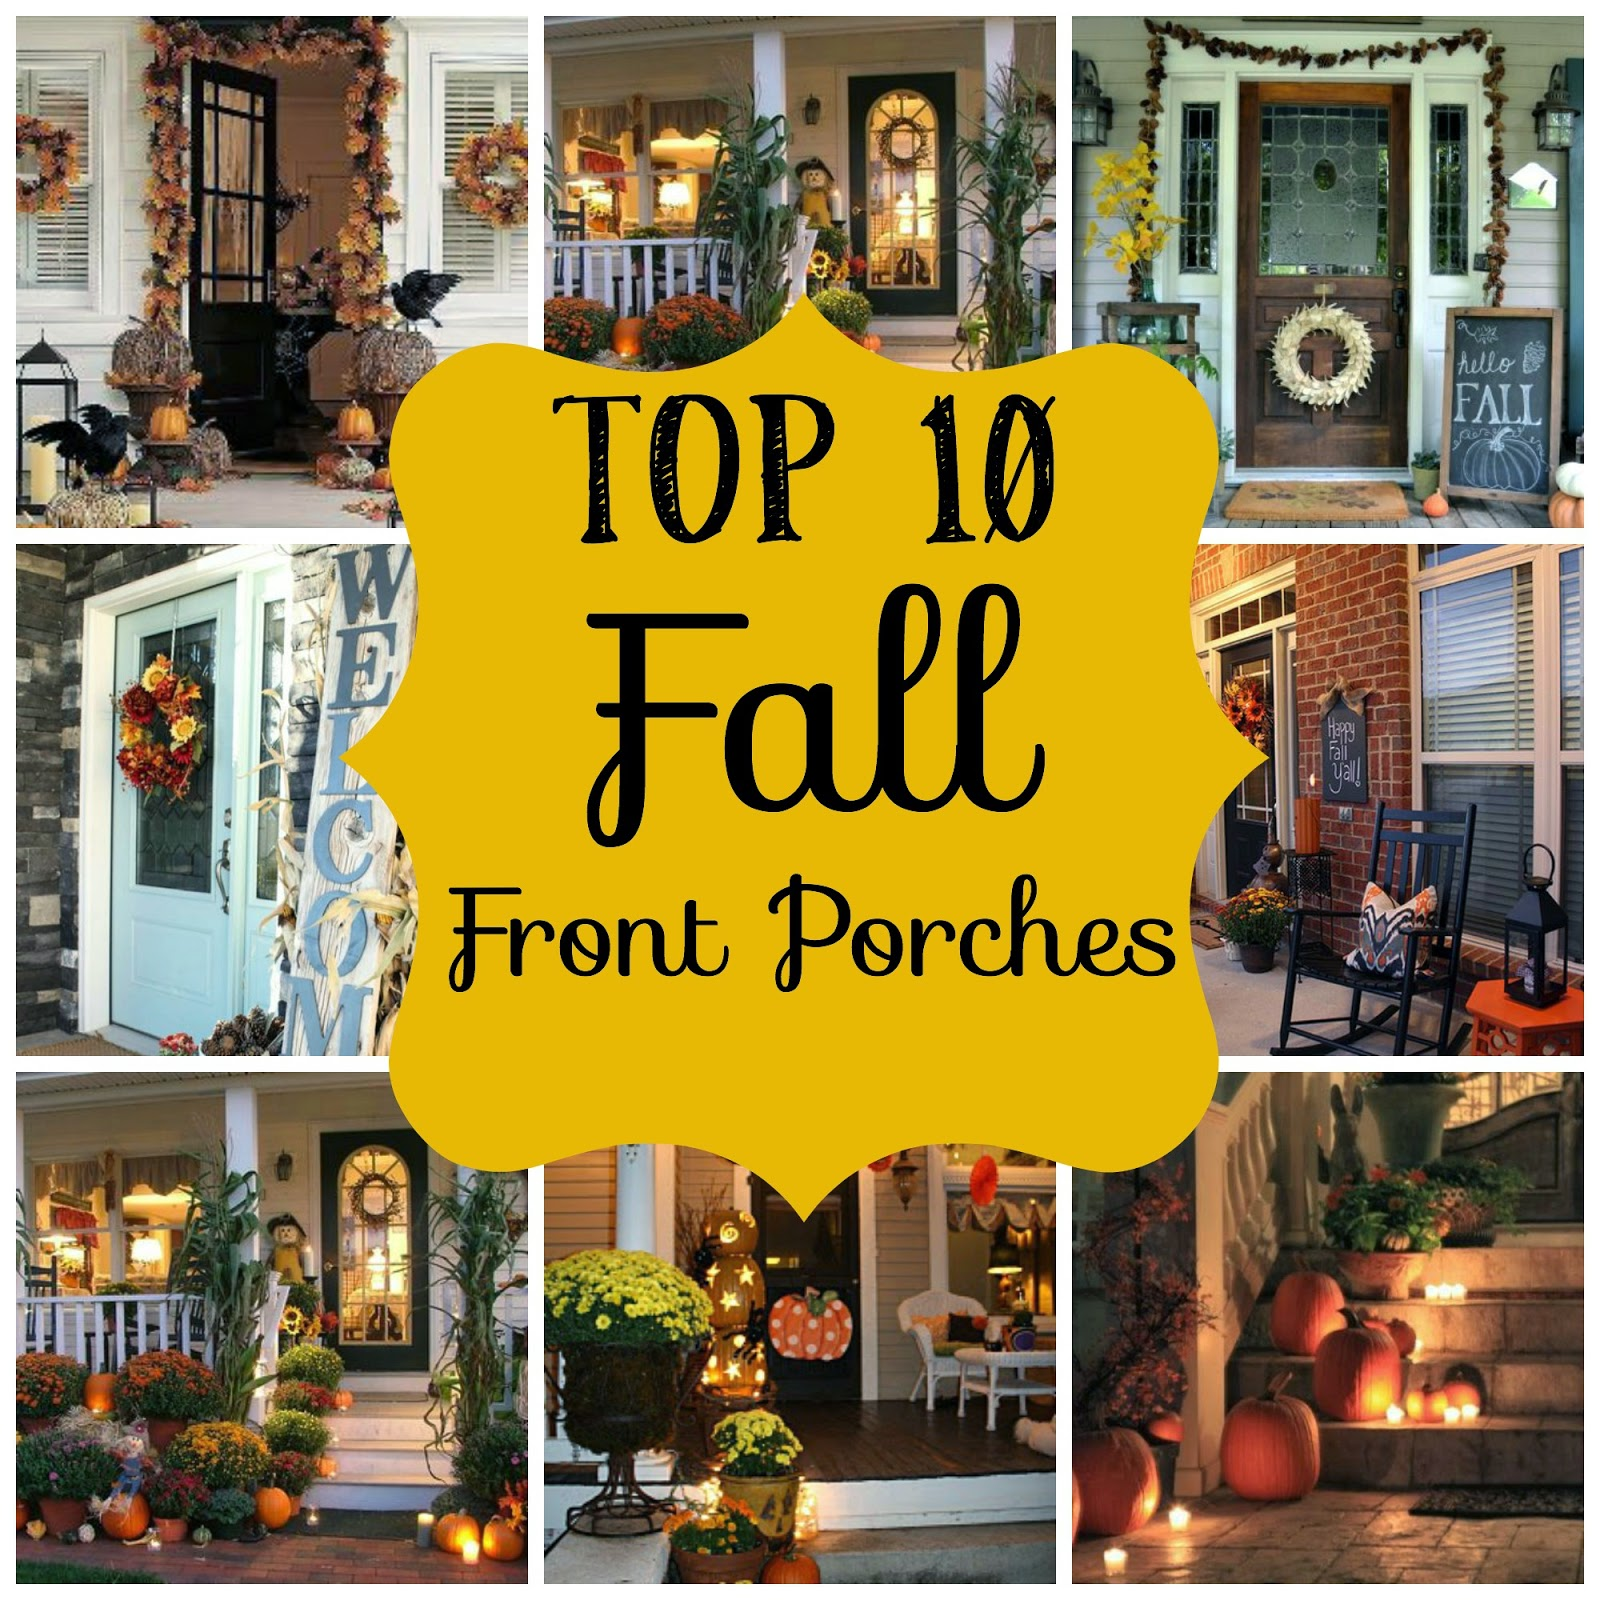 Top 10 Fall Front Porches